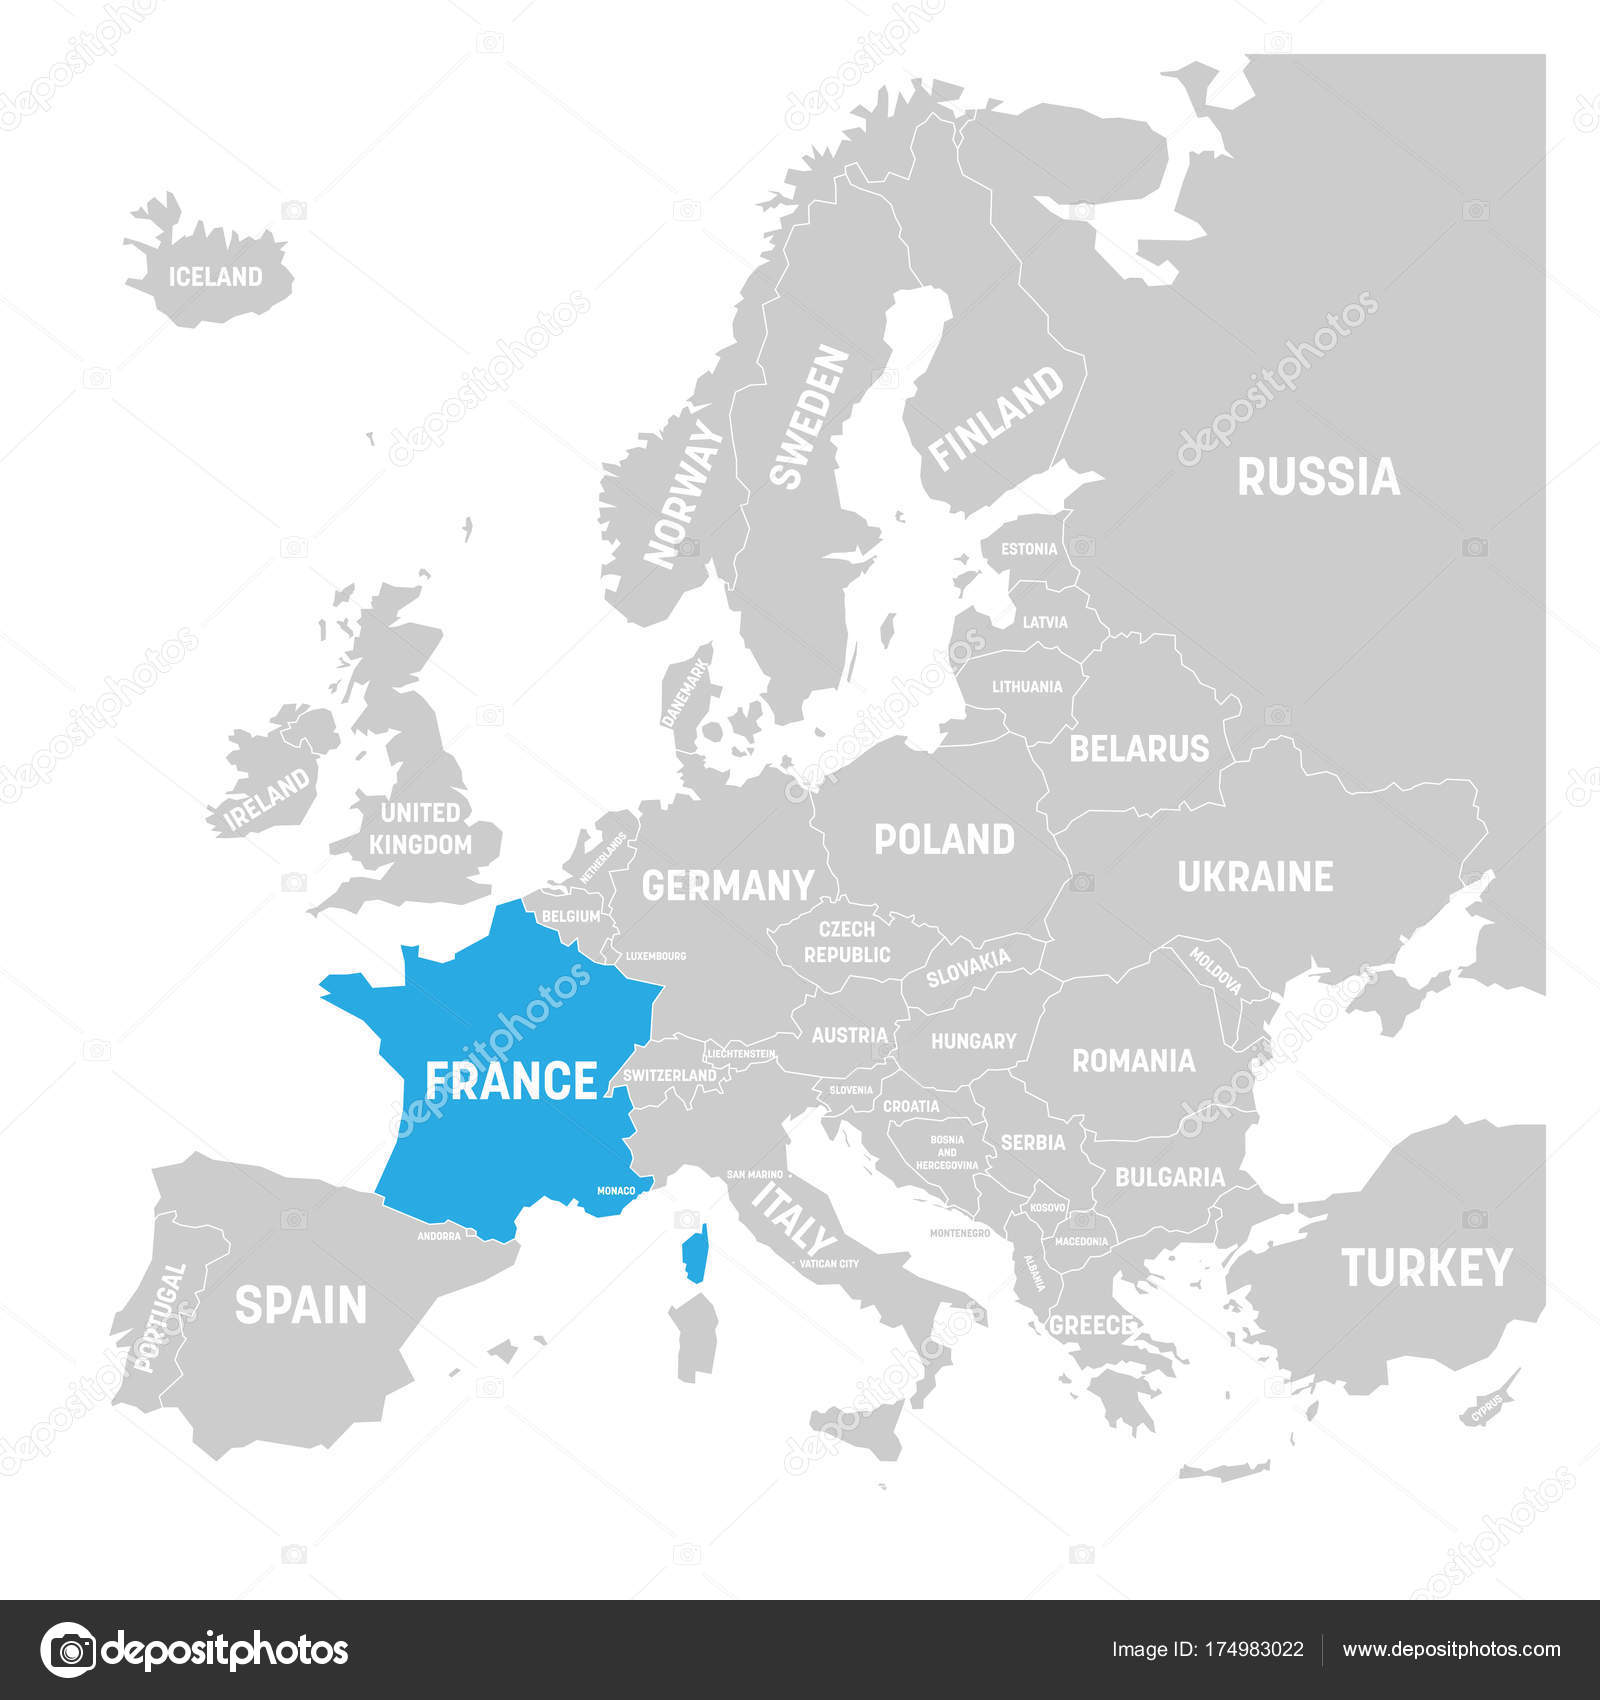 France marked by blue in grey political map of europe vector france marked by blue in grey political map of europe vector illustration stock vector gumiabroncs Gallery